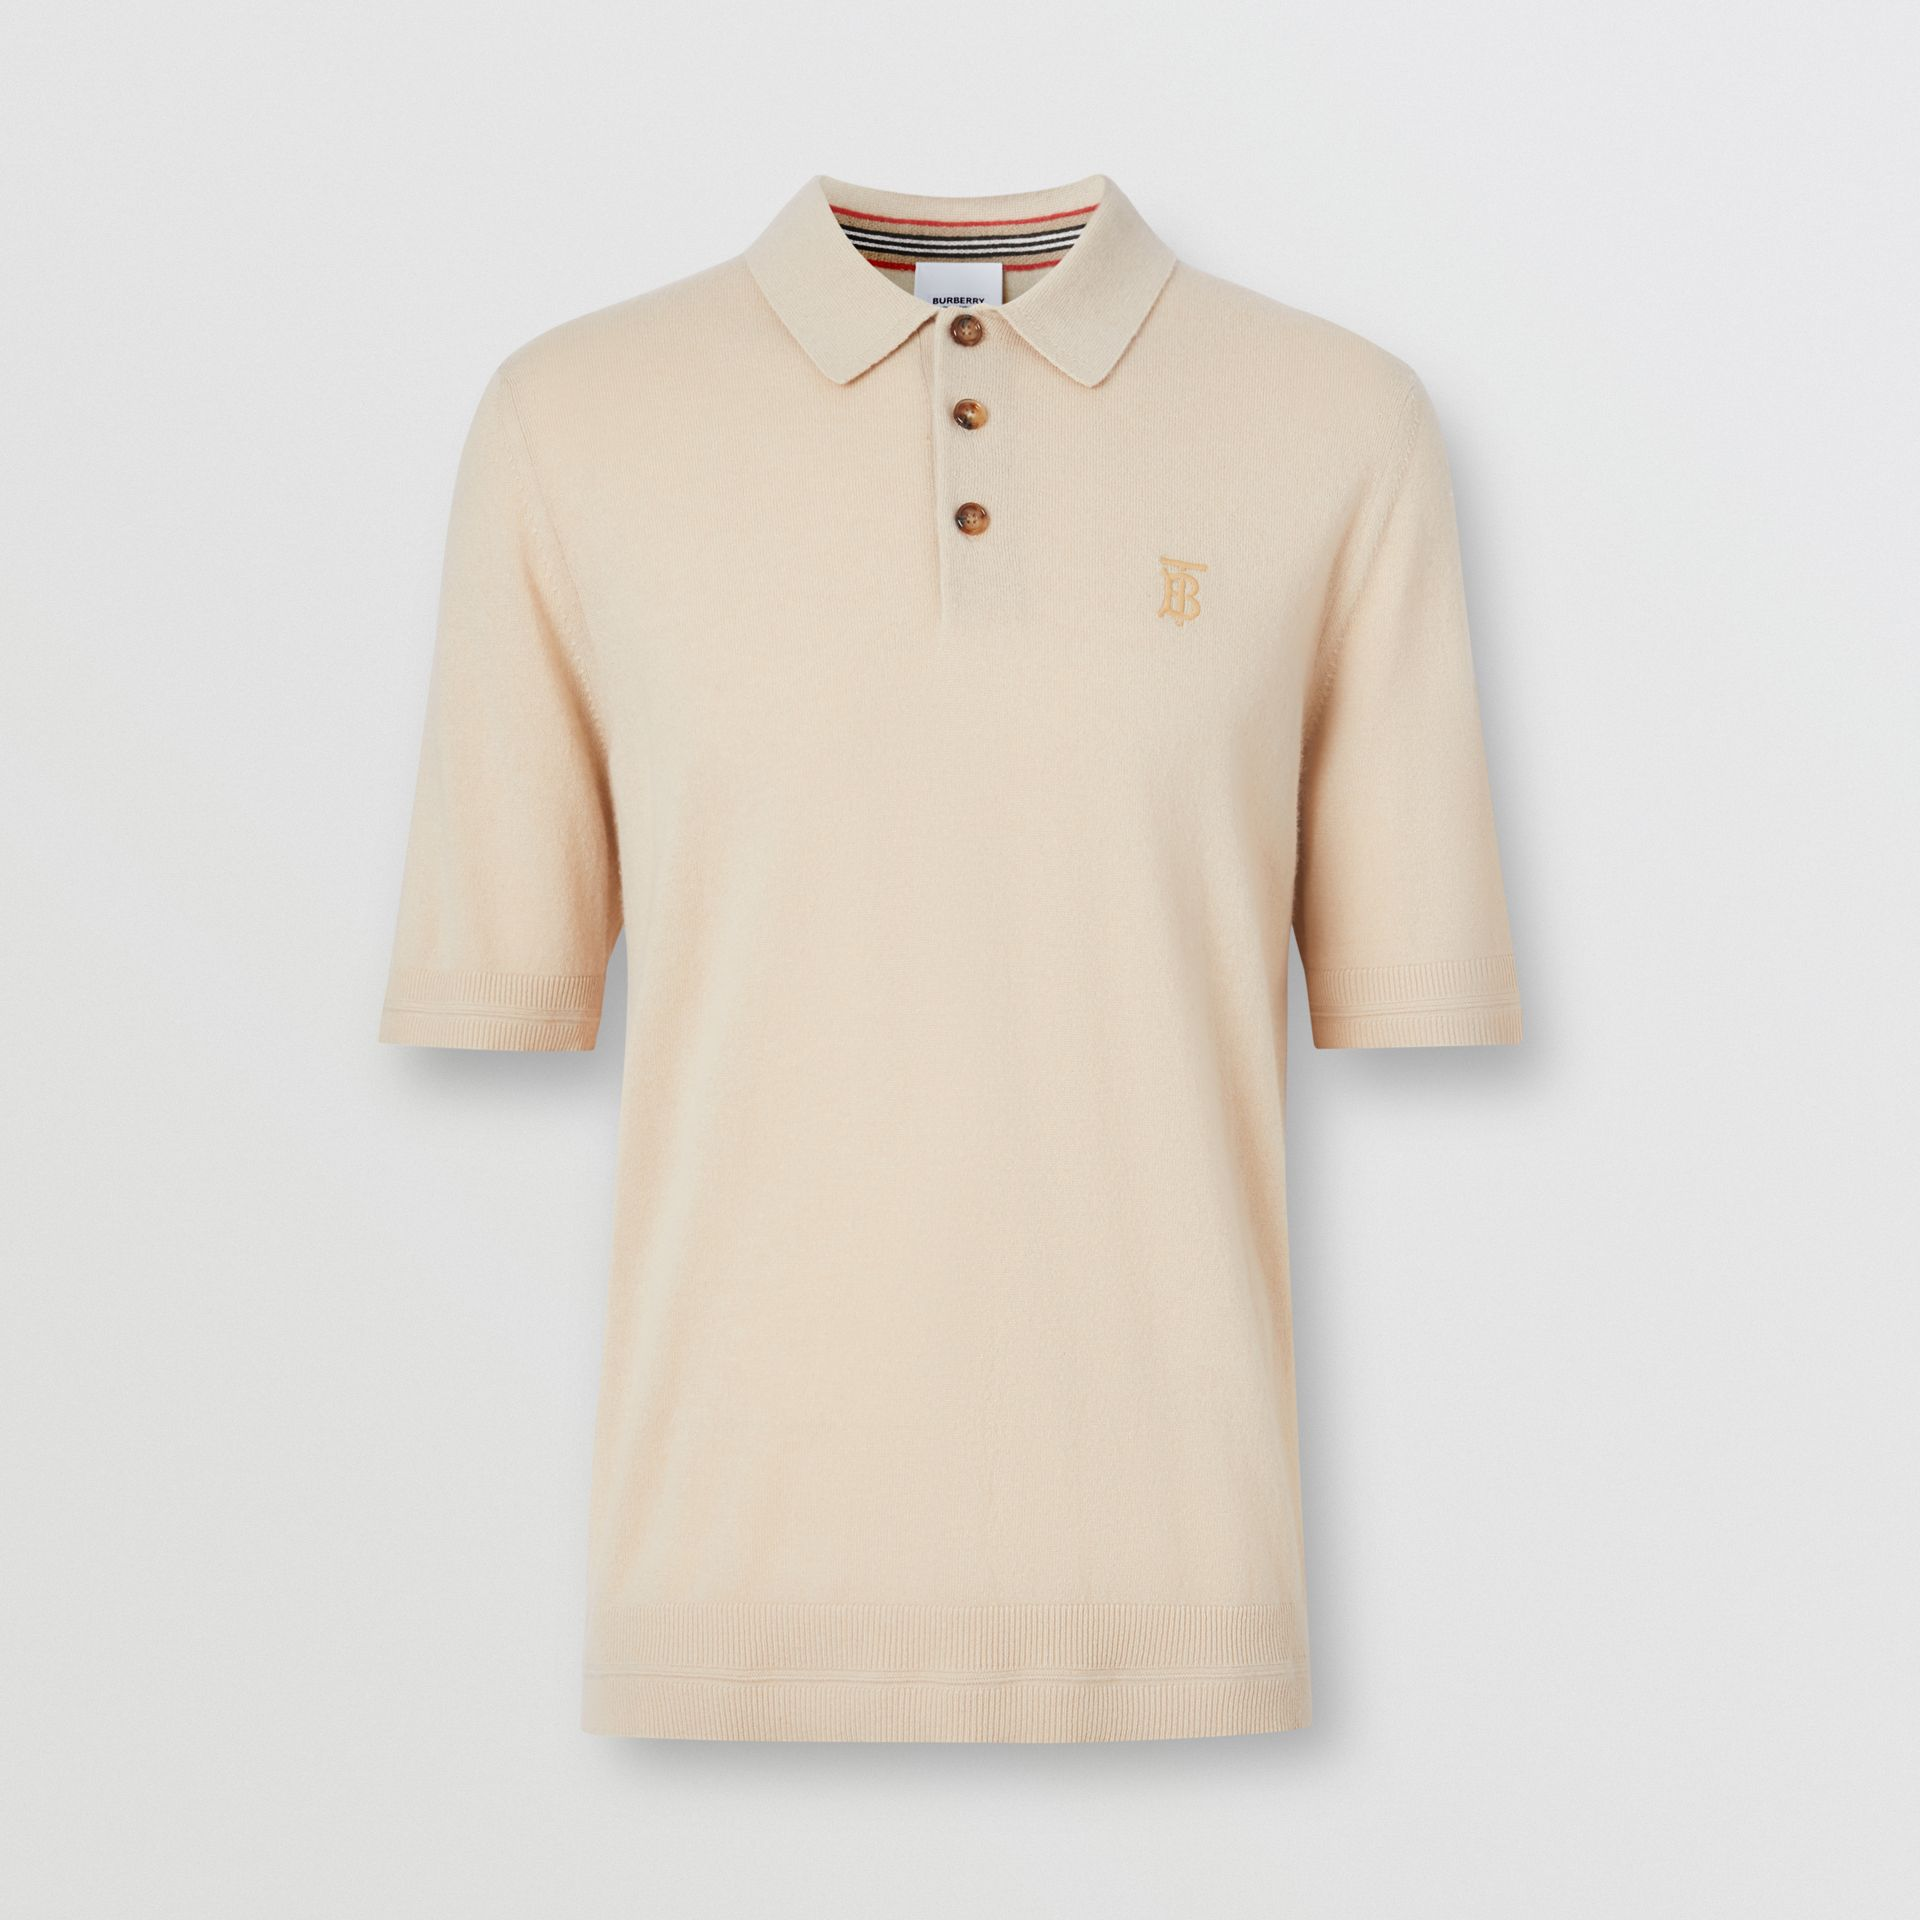 Monogram Motif Cashmere Polo Shirt in Soft Fawn - Men | Burberry - gallery image 3